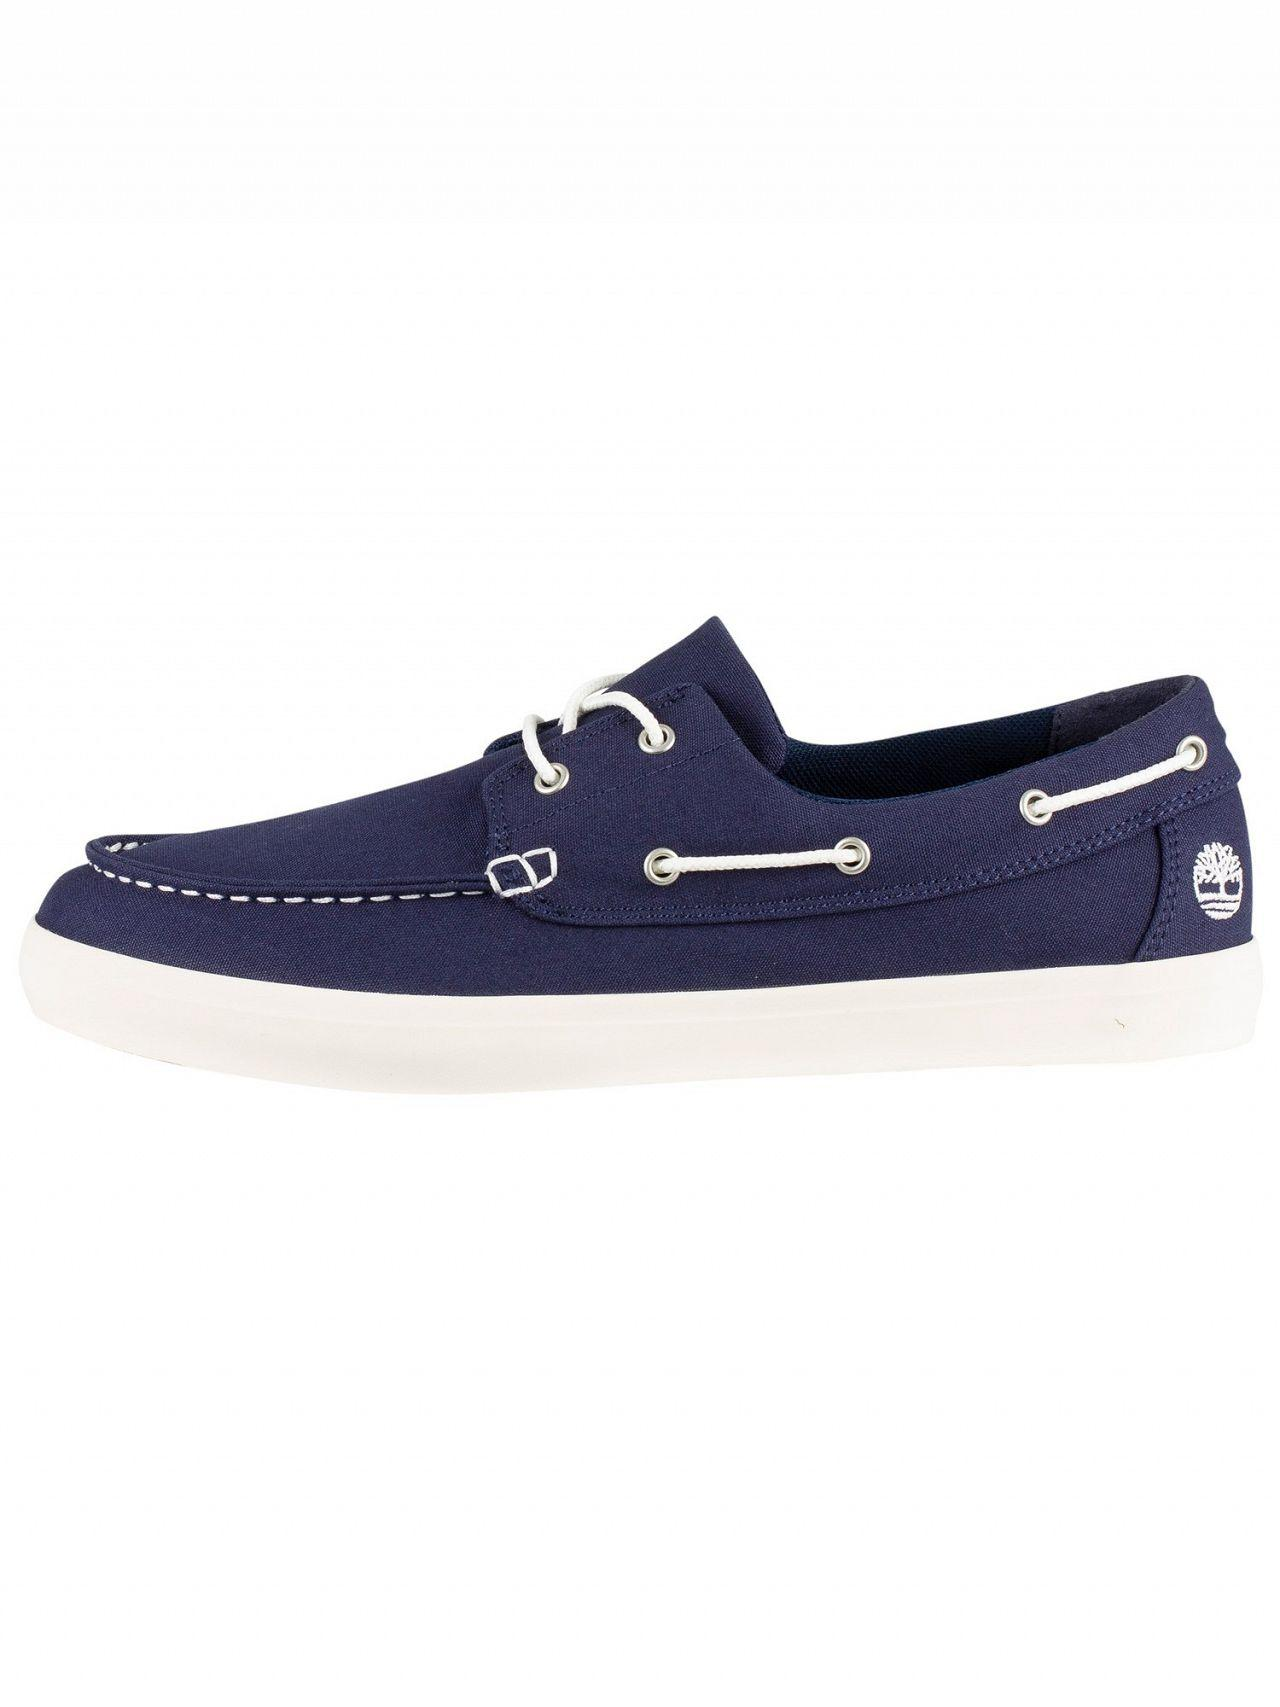 5a510503daa Lyst - Timberland Black Iris Navy Union Wharf Boat Shoes in Black for Men